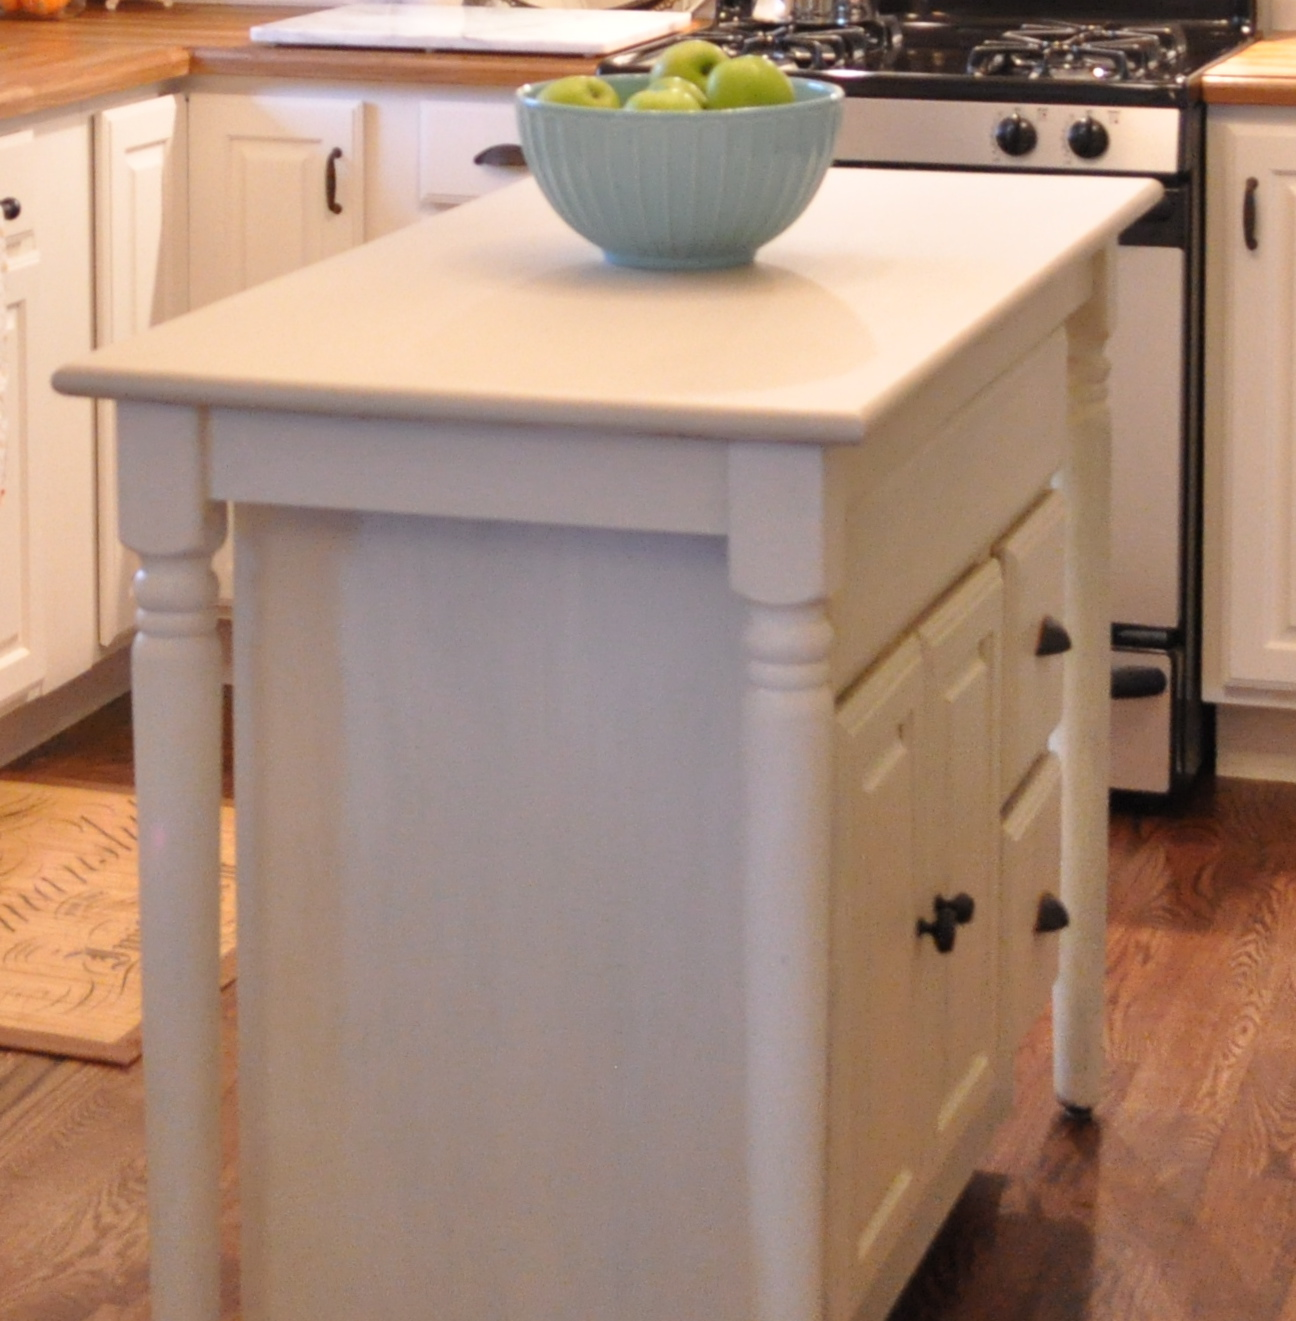 Building A Kitchen Island Jennifer Rizzo - How to build a kitchen island with cabinets